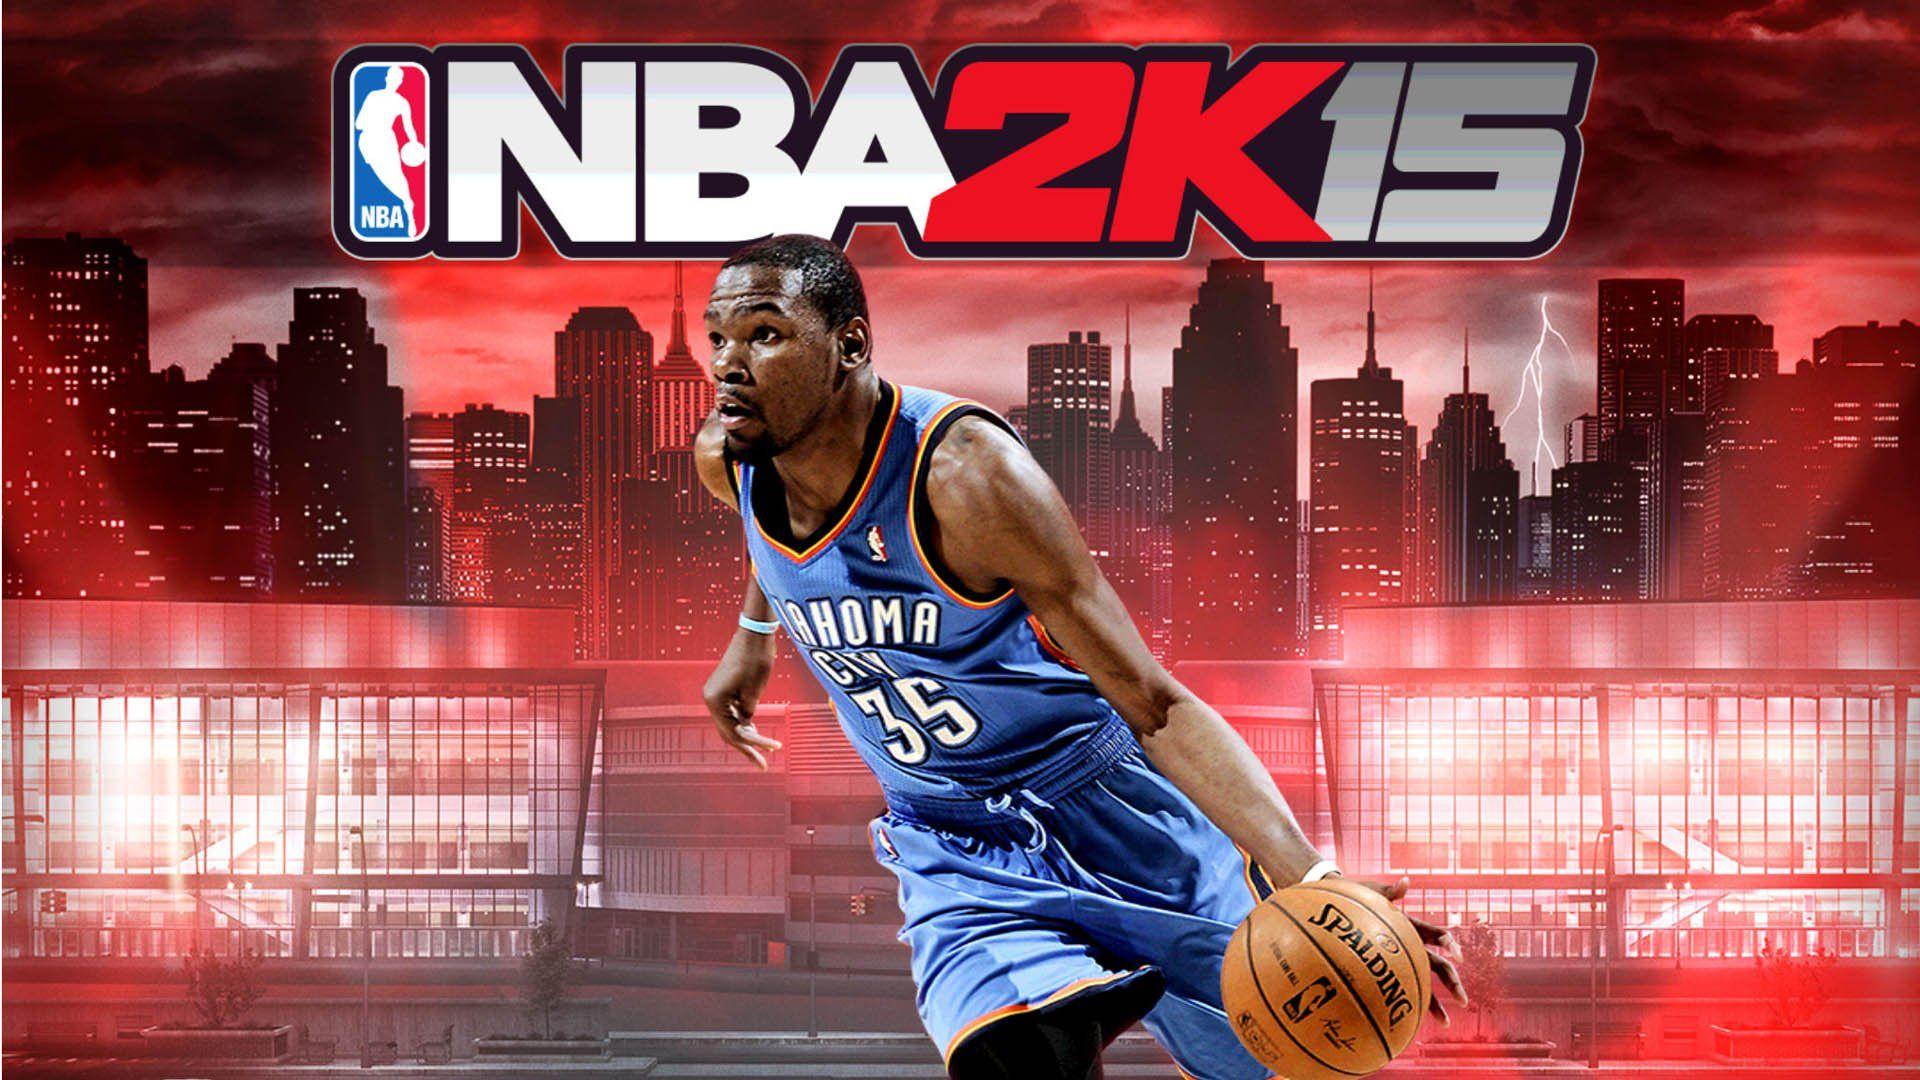 Kevin Durant Nba K Wallpapers 1920 1080 Nba 2k15 Wallpapers 50 Wallpapers Adorable Wallpapers Video Games For Kids Nba Video Games Nba